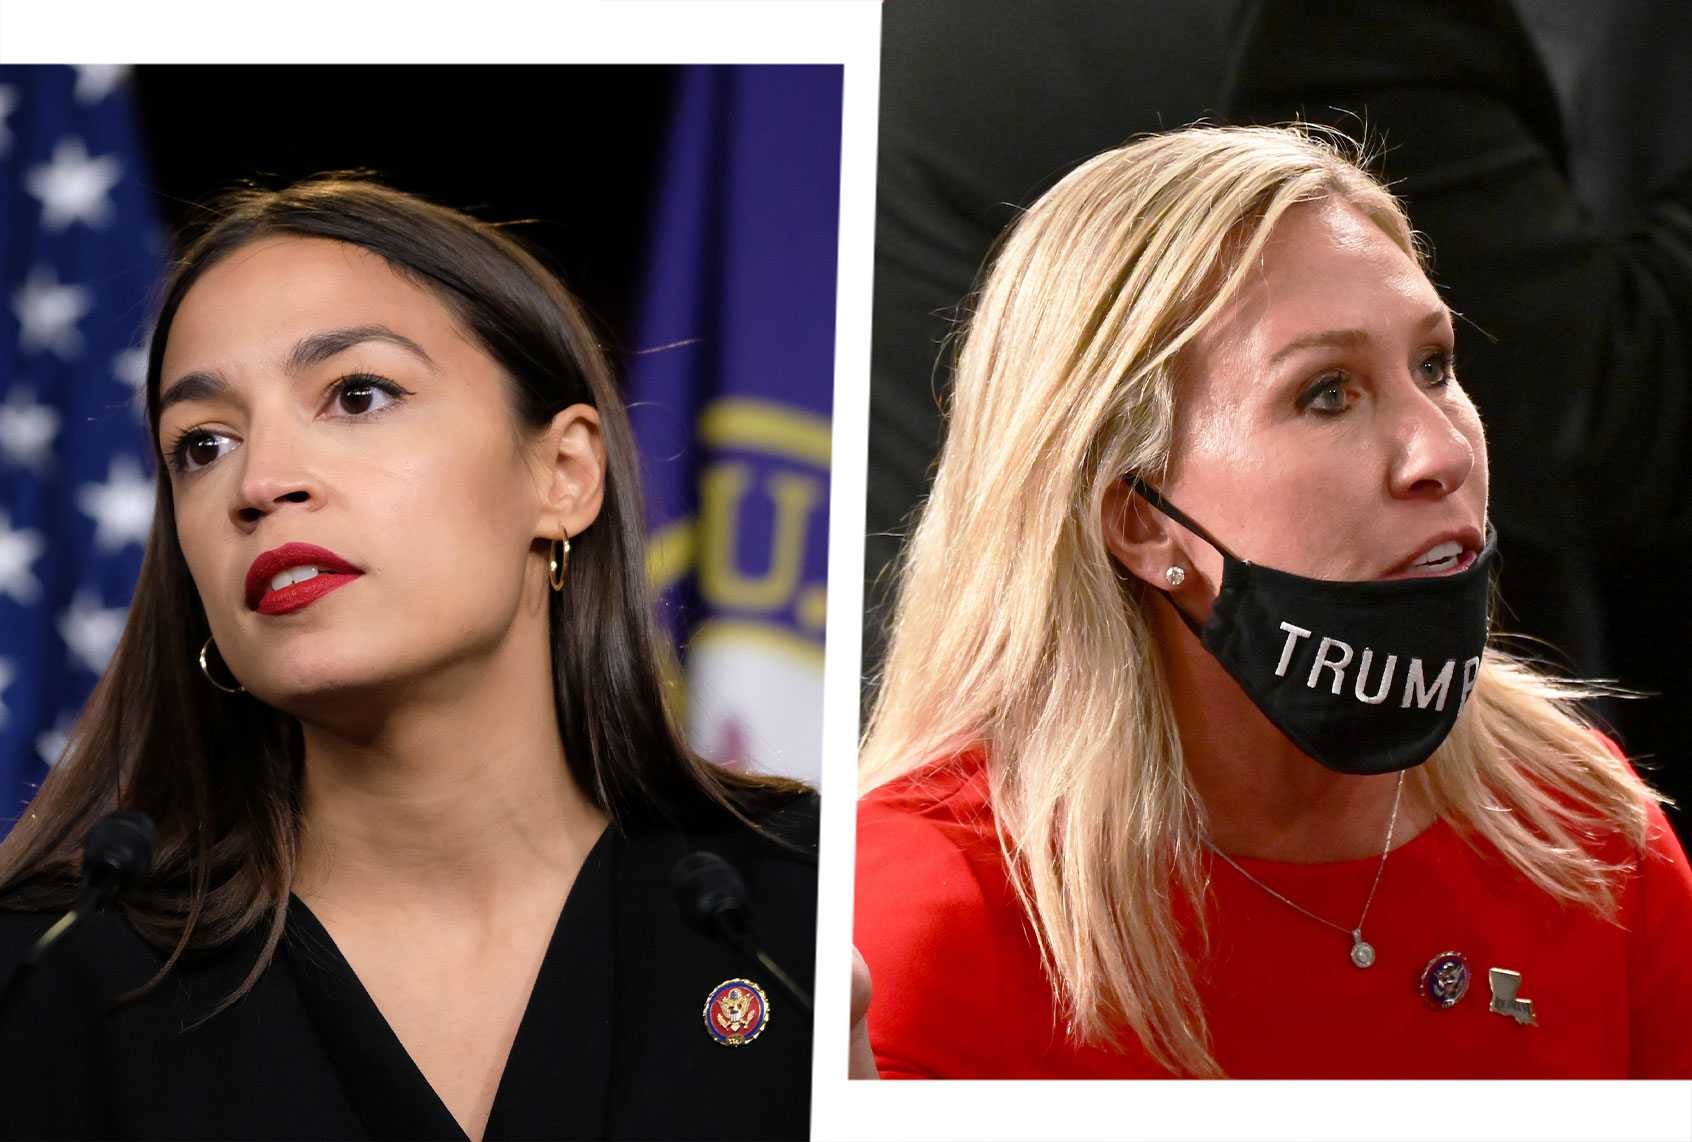 Republicans are using Alexandria Ocasio-Cortez to deflect from controversy over QAnon congresswoman